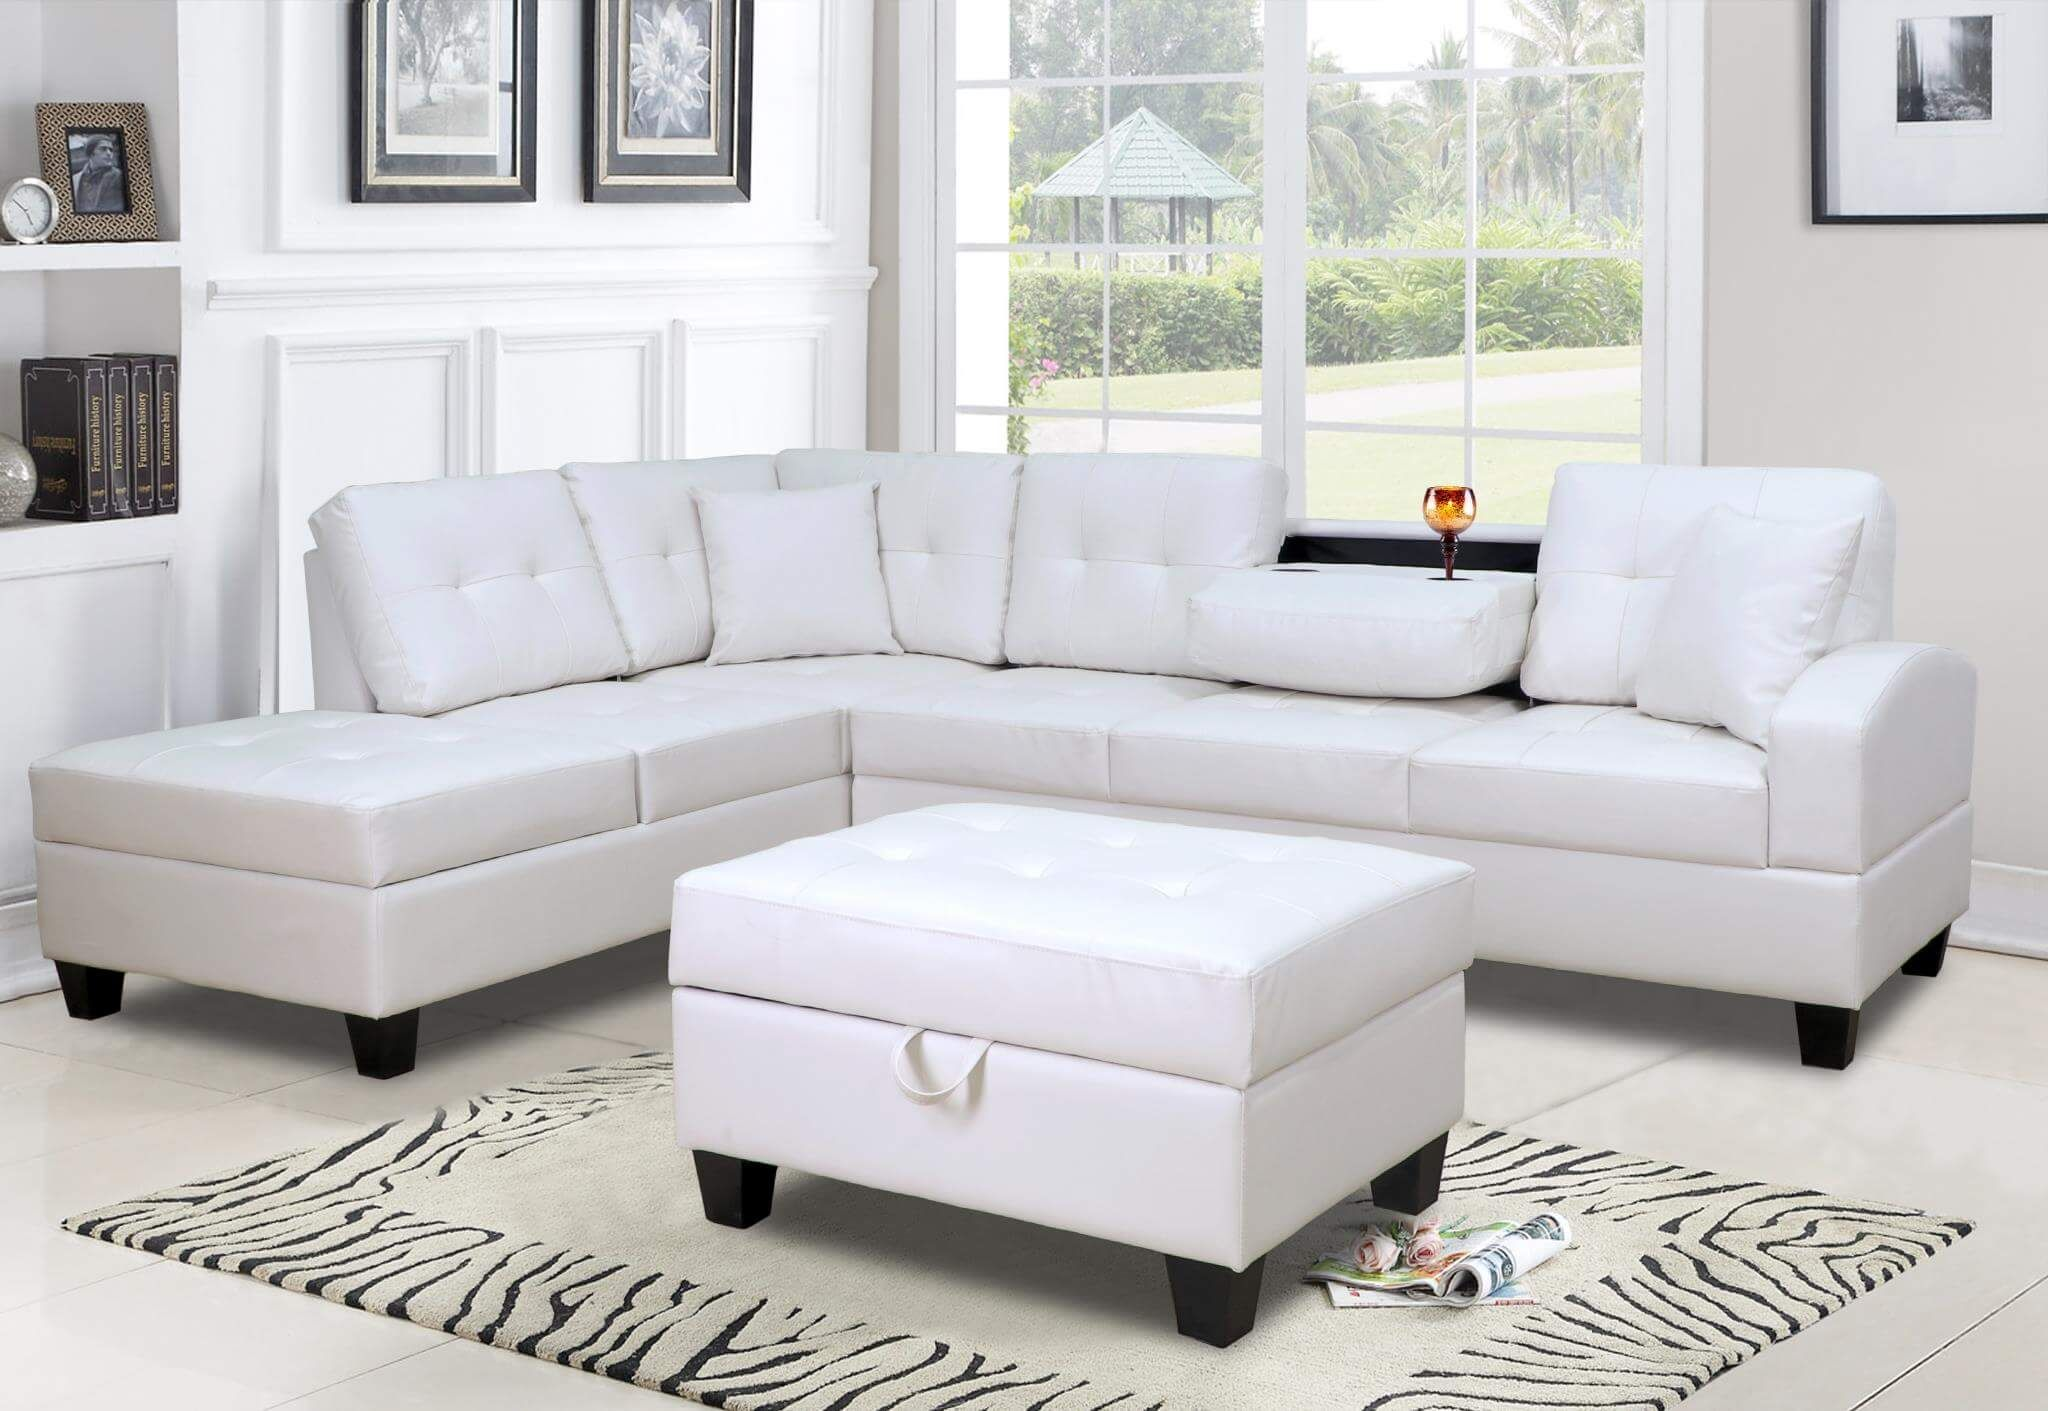 U5300 White Sectional W Free Ottoman Discontinued Sectional Sofa With Chaise Leather Sectional Sofas Sectional Sofa